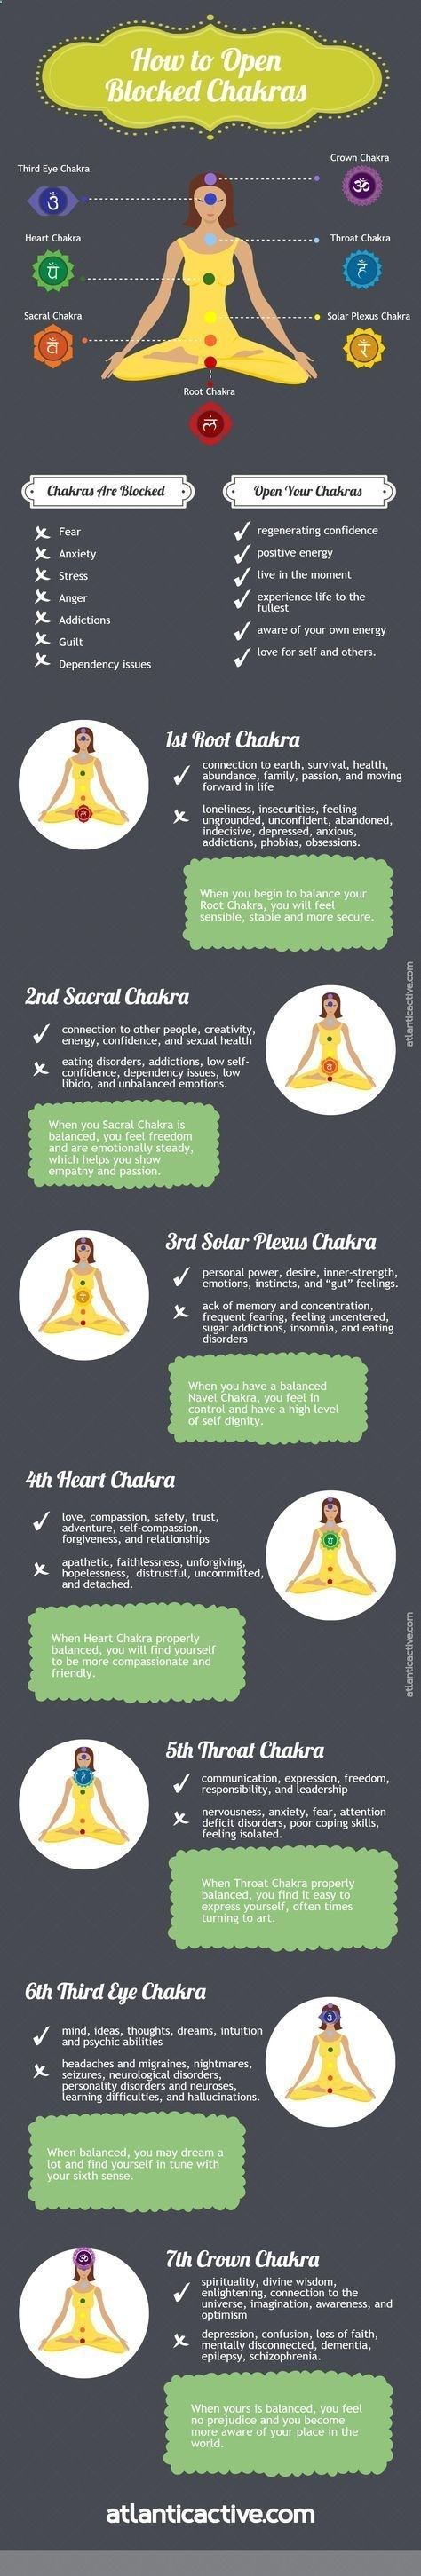 Warning Signs Your Chakras Are Out Of Balance atlanticactive.co.... How to Fix Them? Chakra Opening: Things You Can Do To Open and Heal Each Chakra.